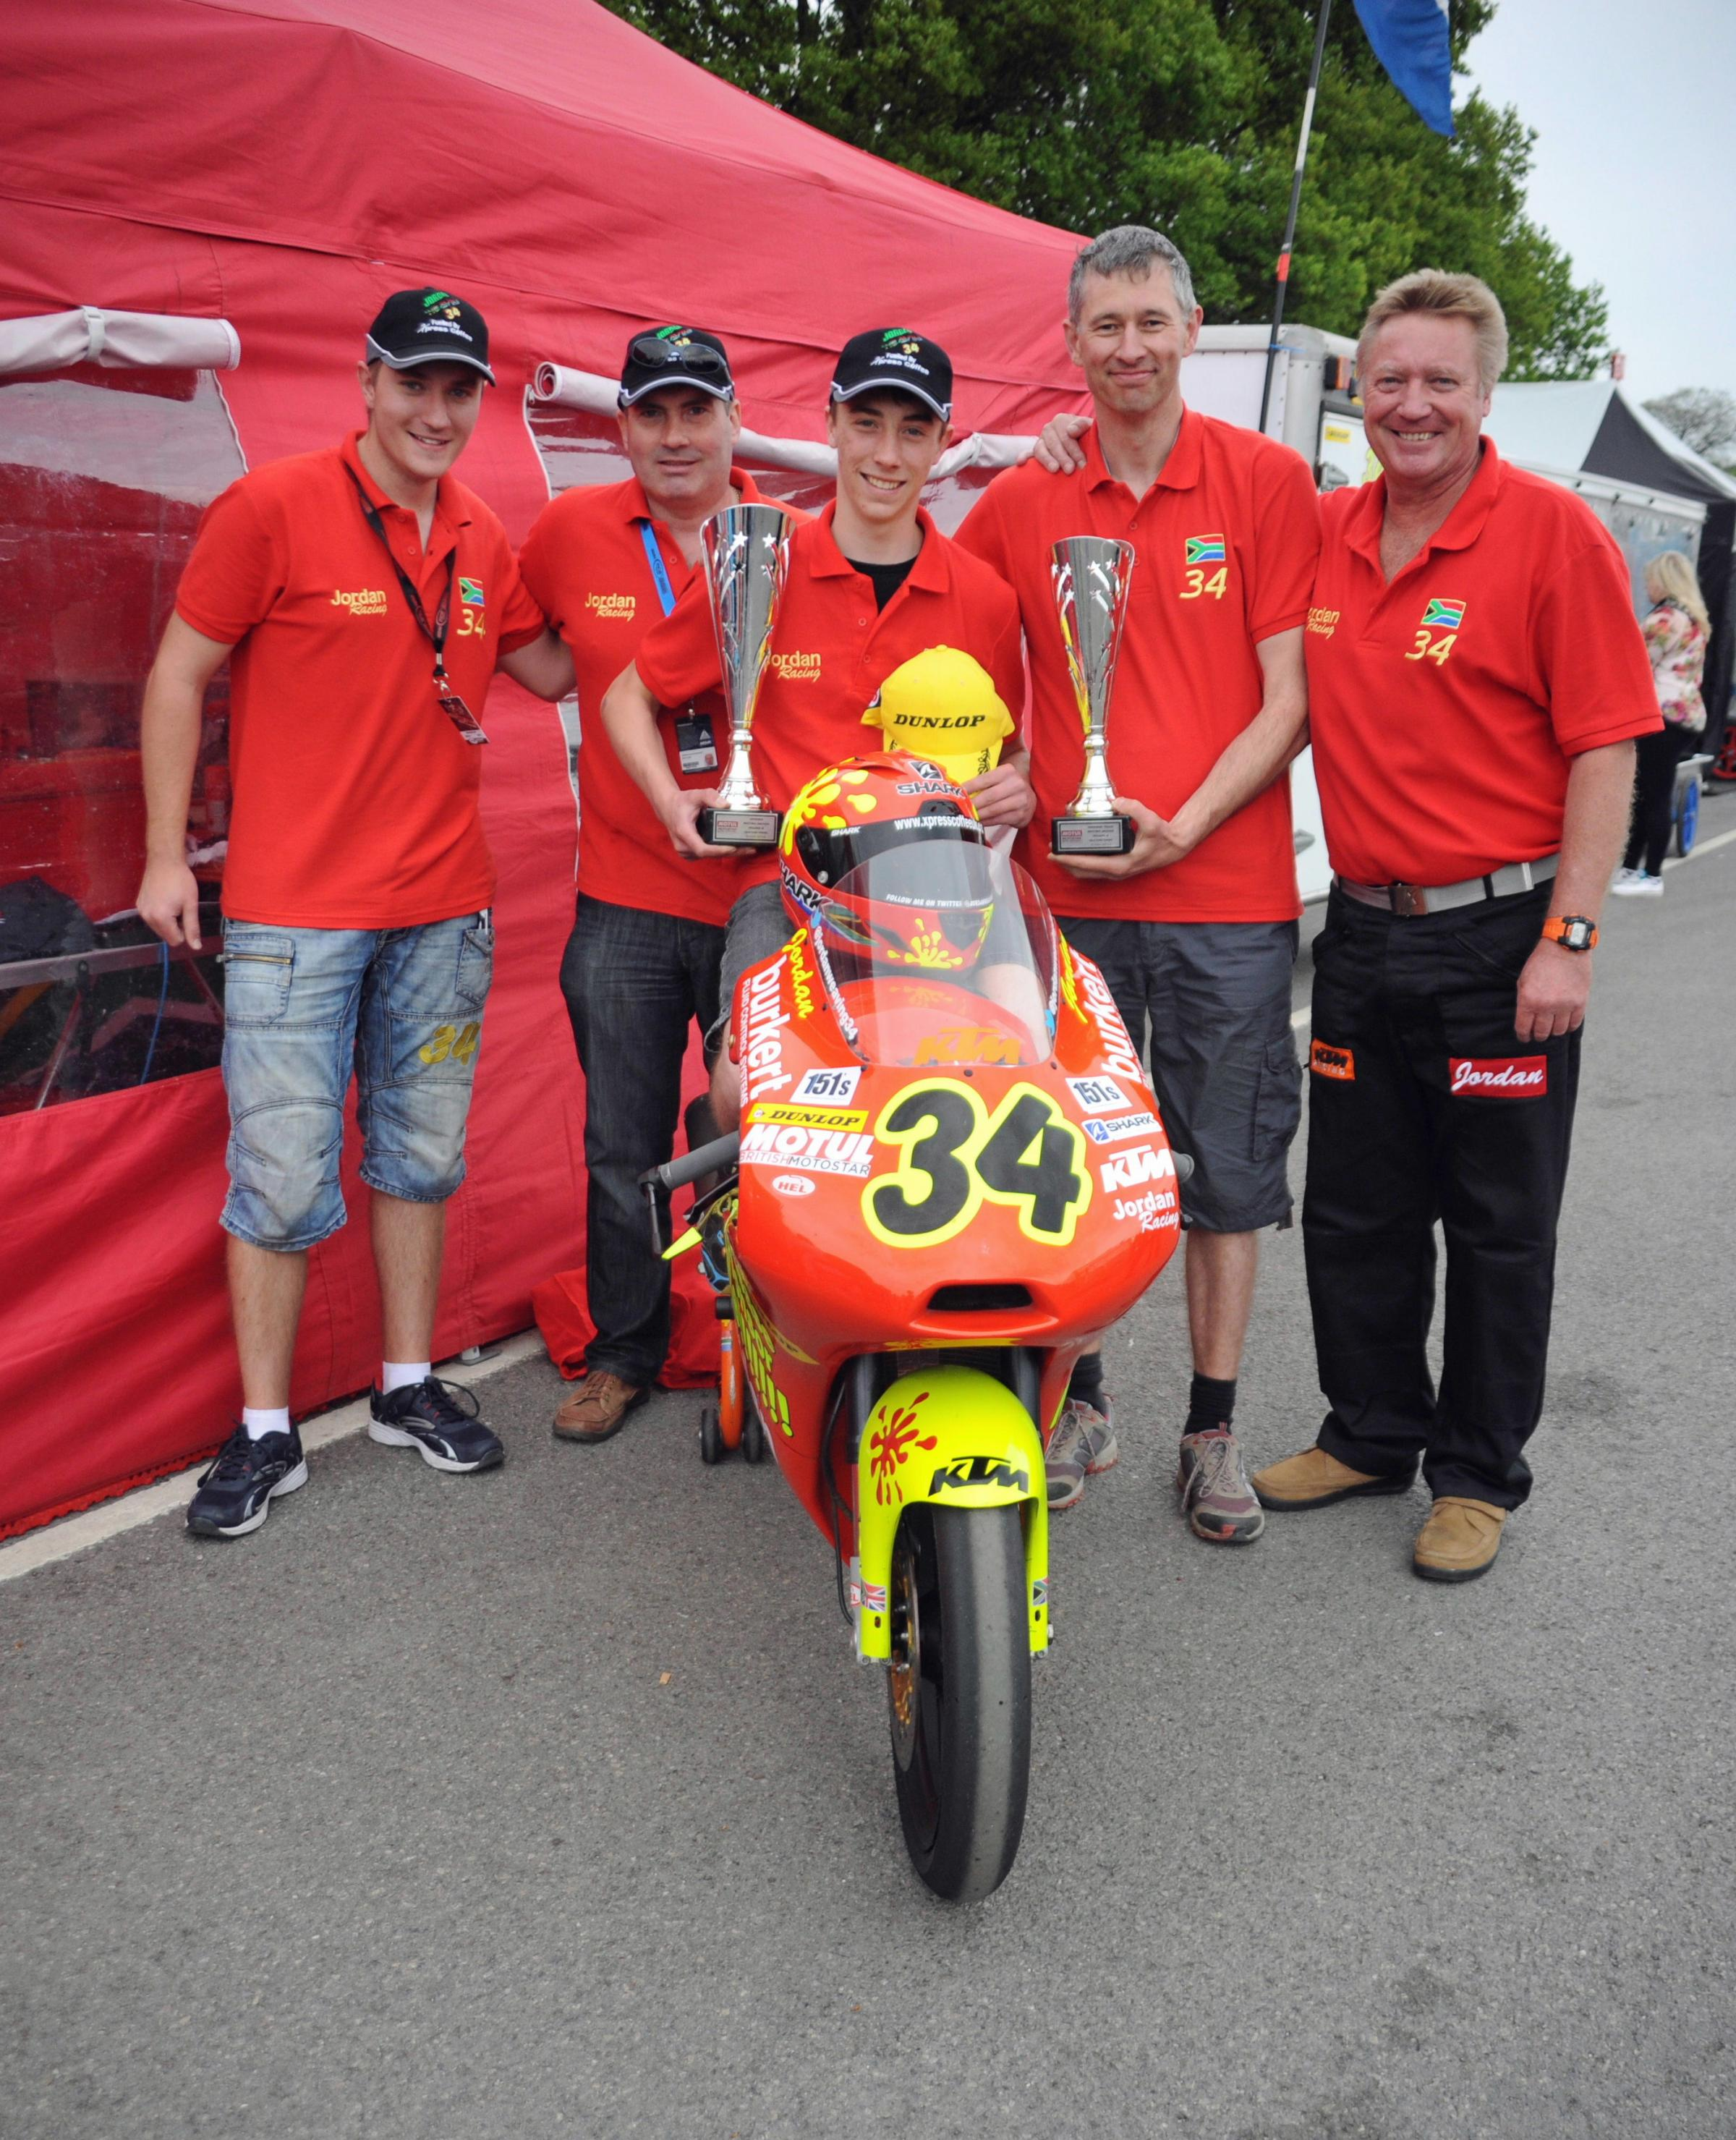 MOTORCYCLING:Weaving triumphs at Oulton Park